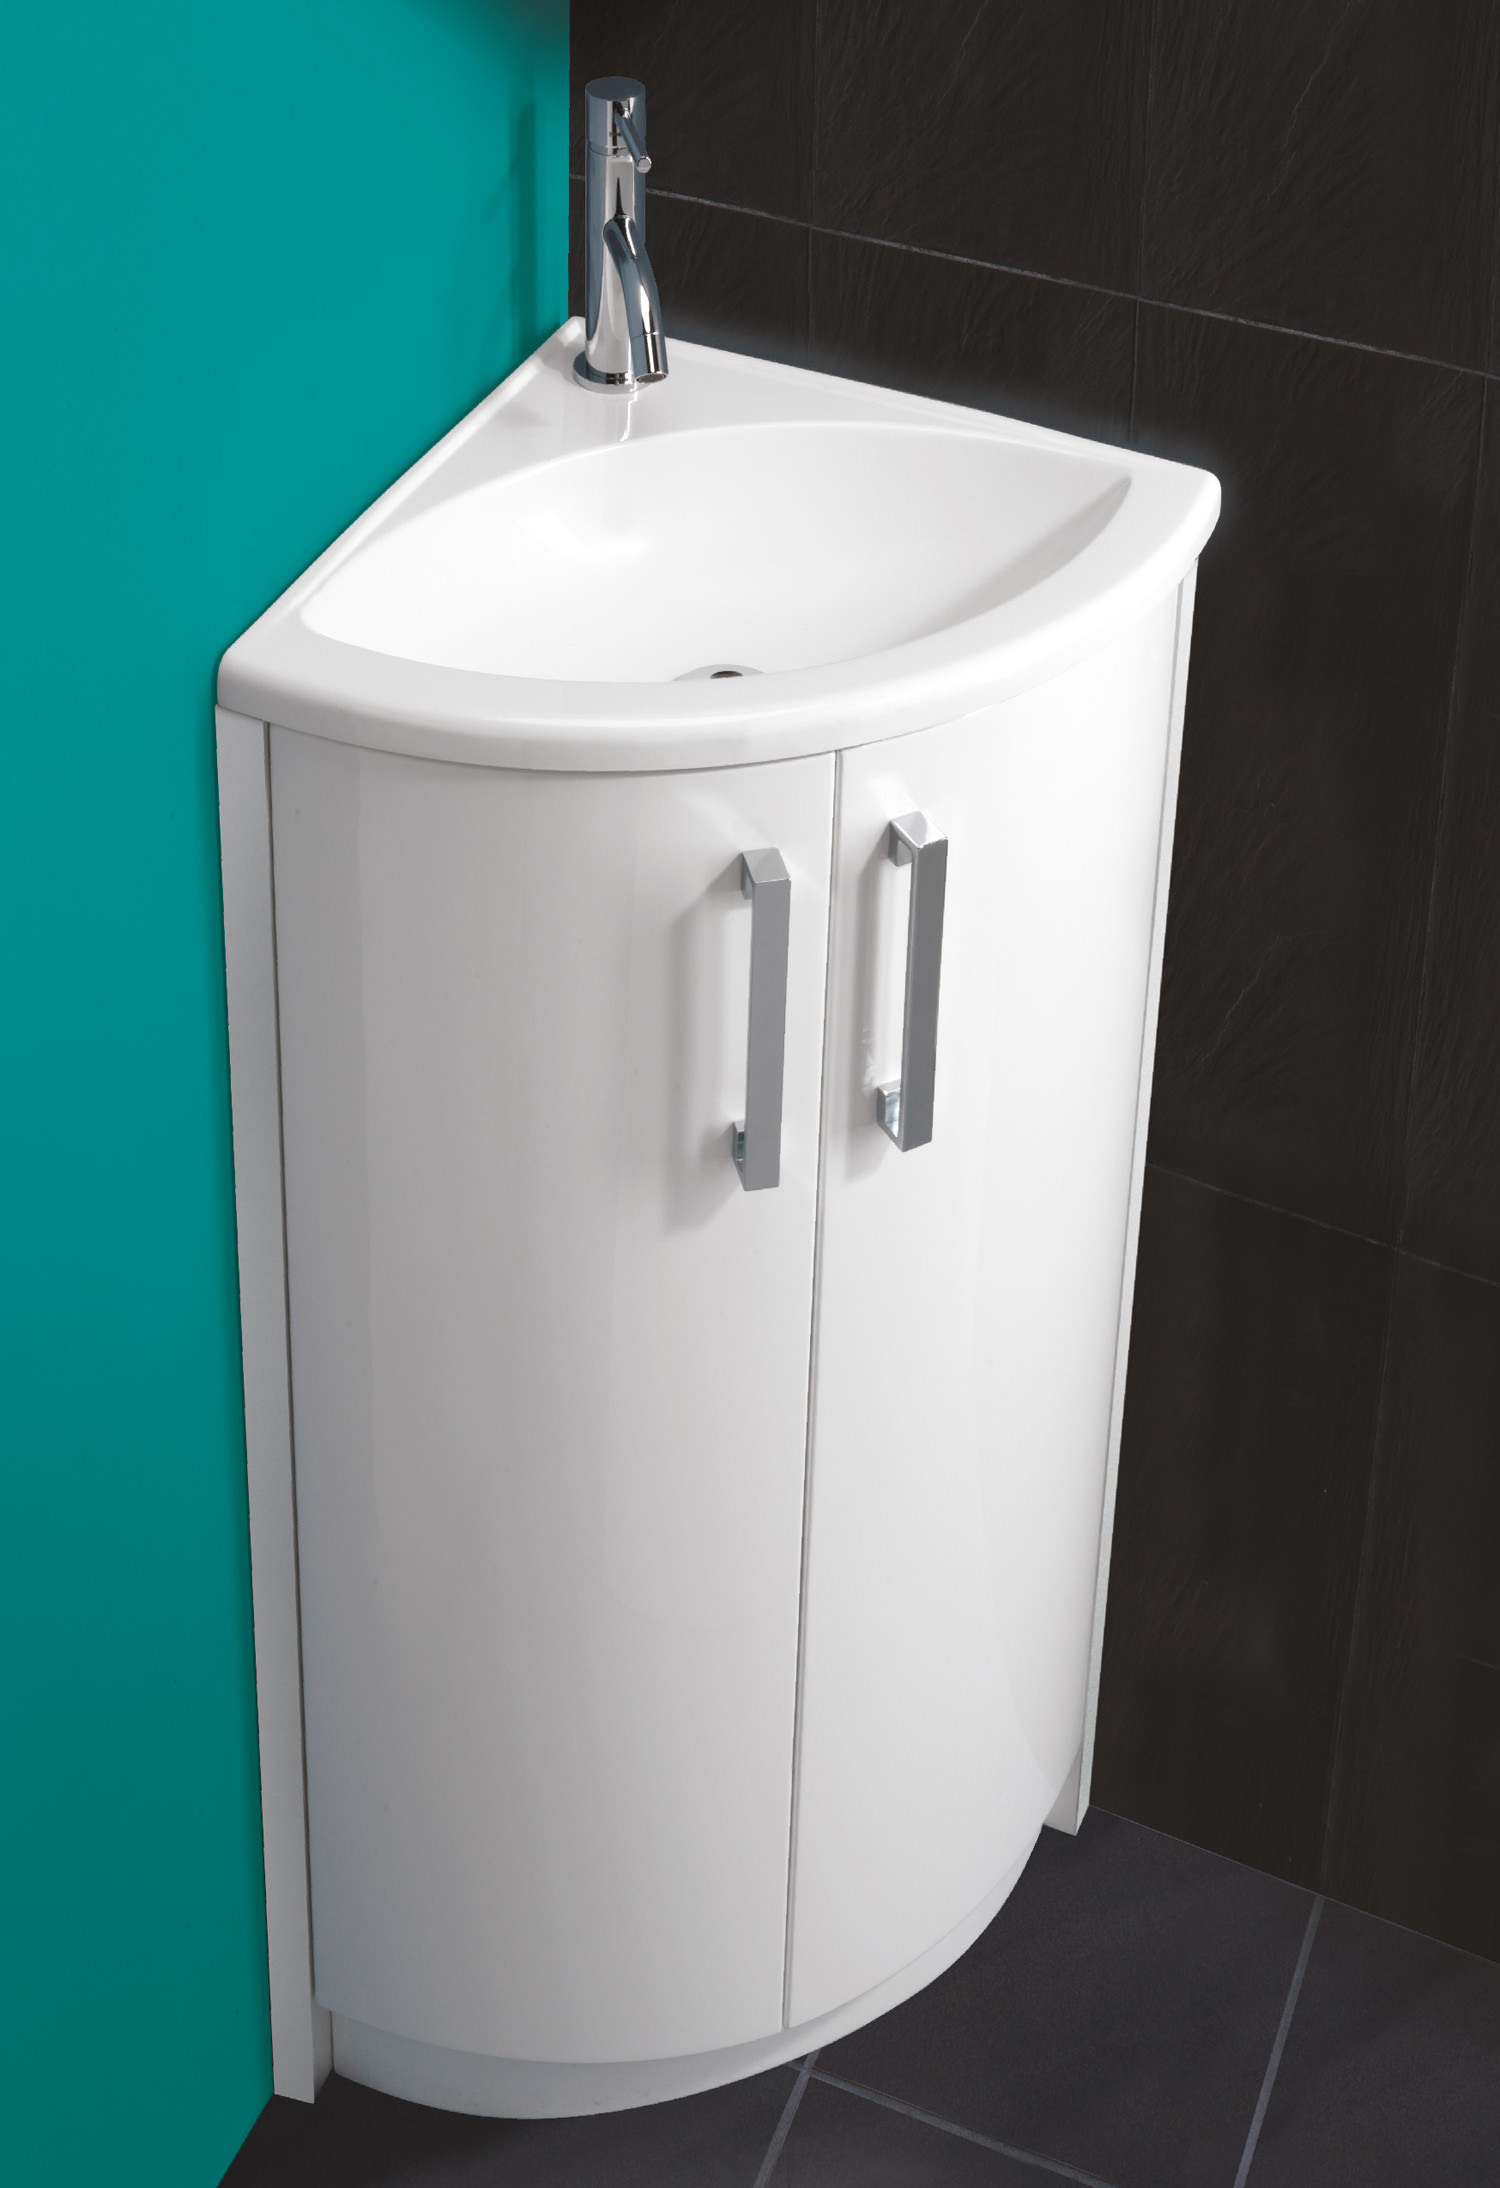 Hib Solo White Corner Vanity Unit And Basin 625 X 820mm 9602600